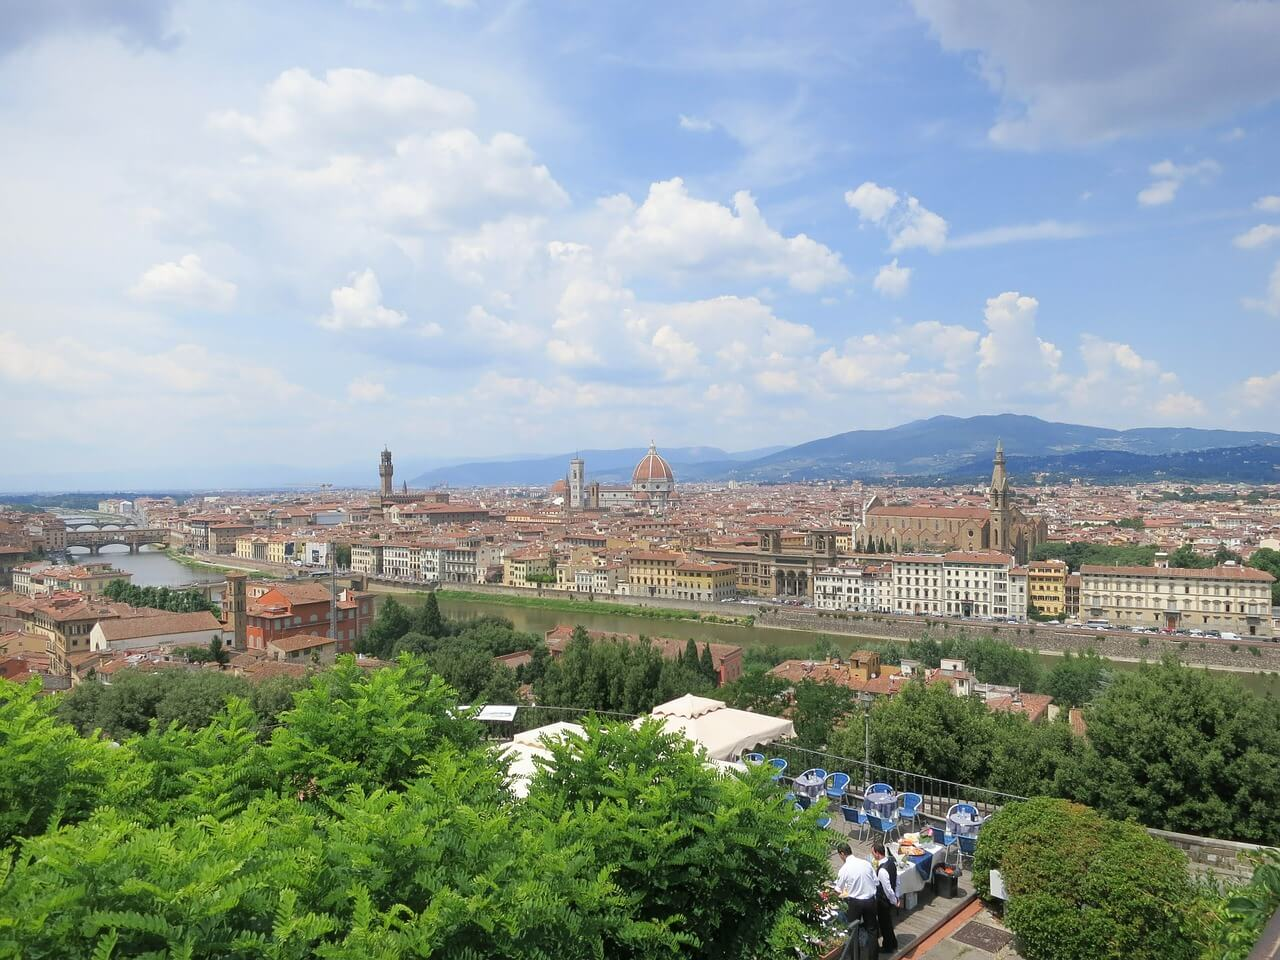 Iconic view of Florence City from Piazzale Michelangelo